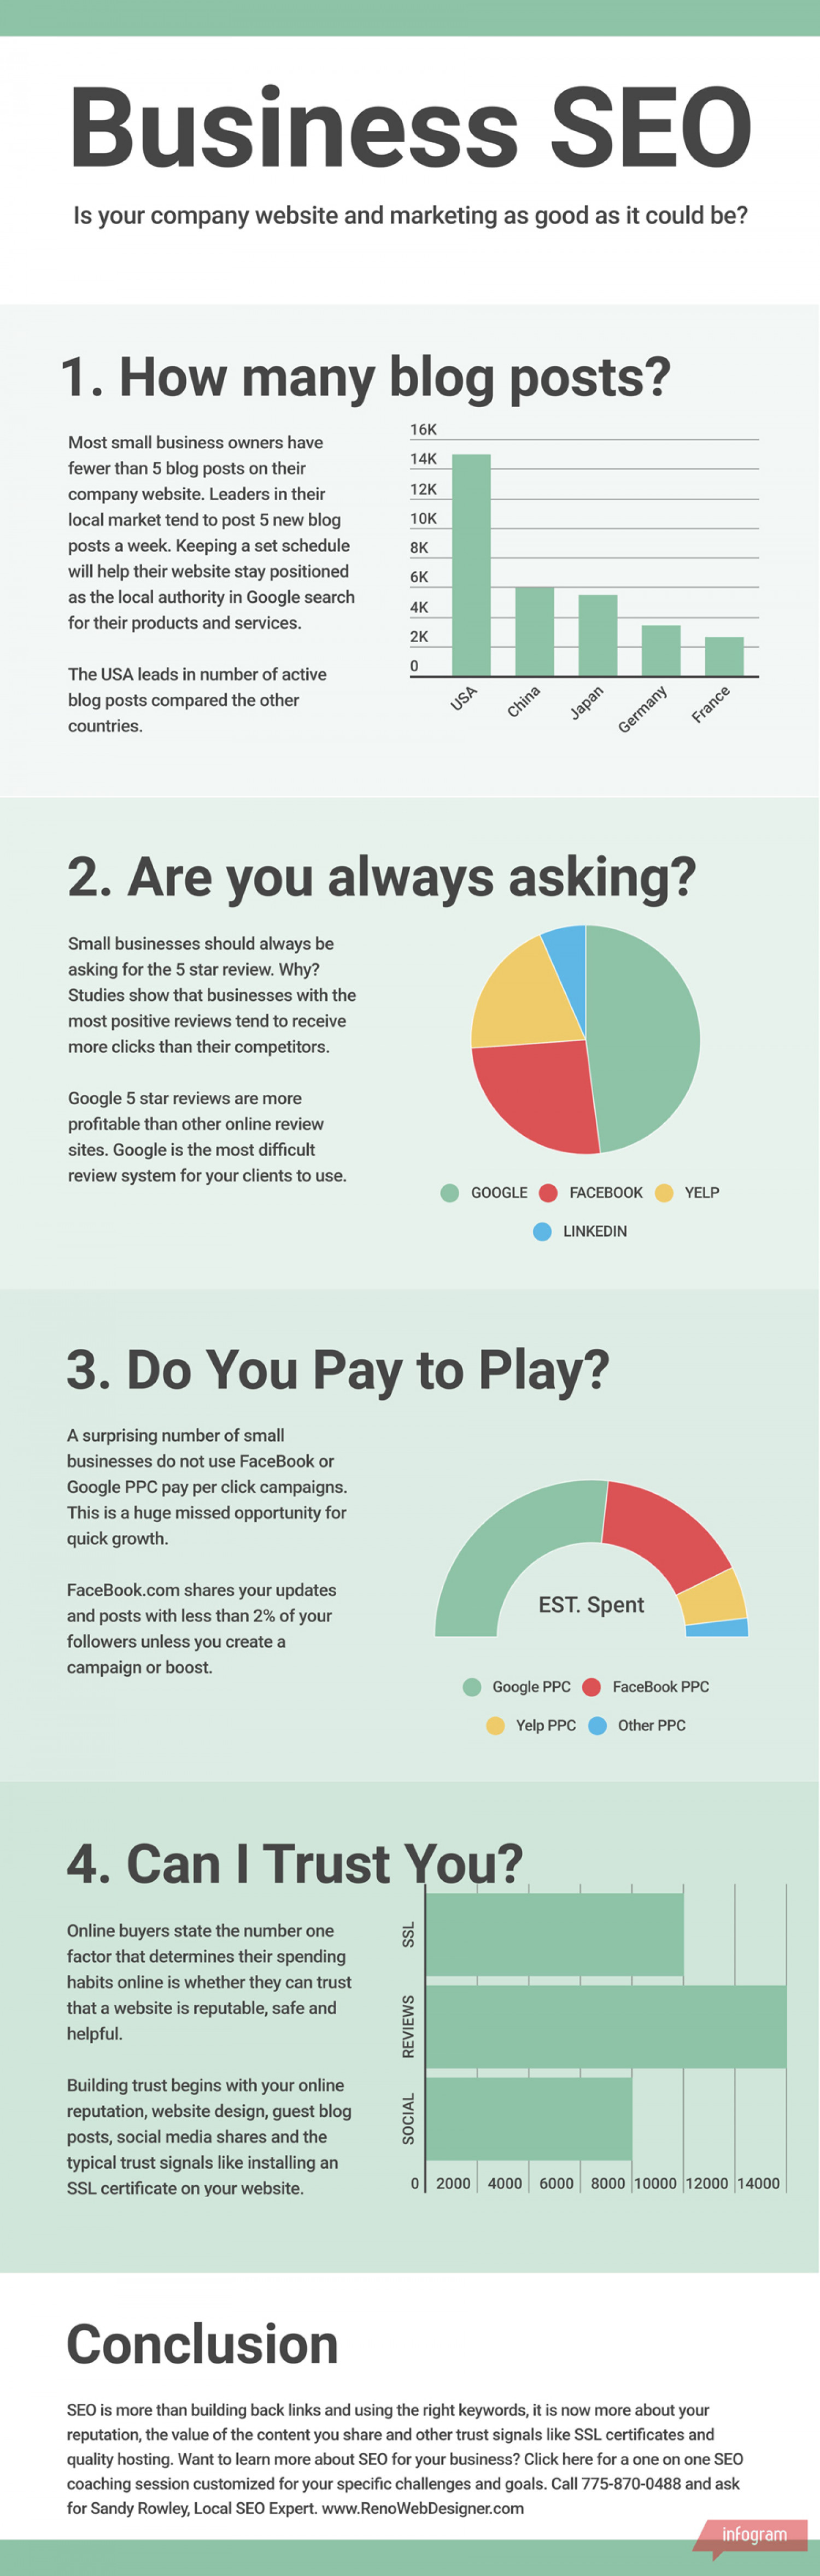 Business SEO | Is Your Company Website Marketing As Good As It Could Be? Infographic